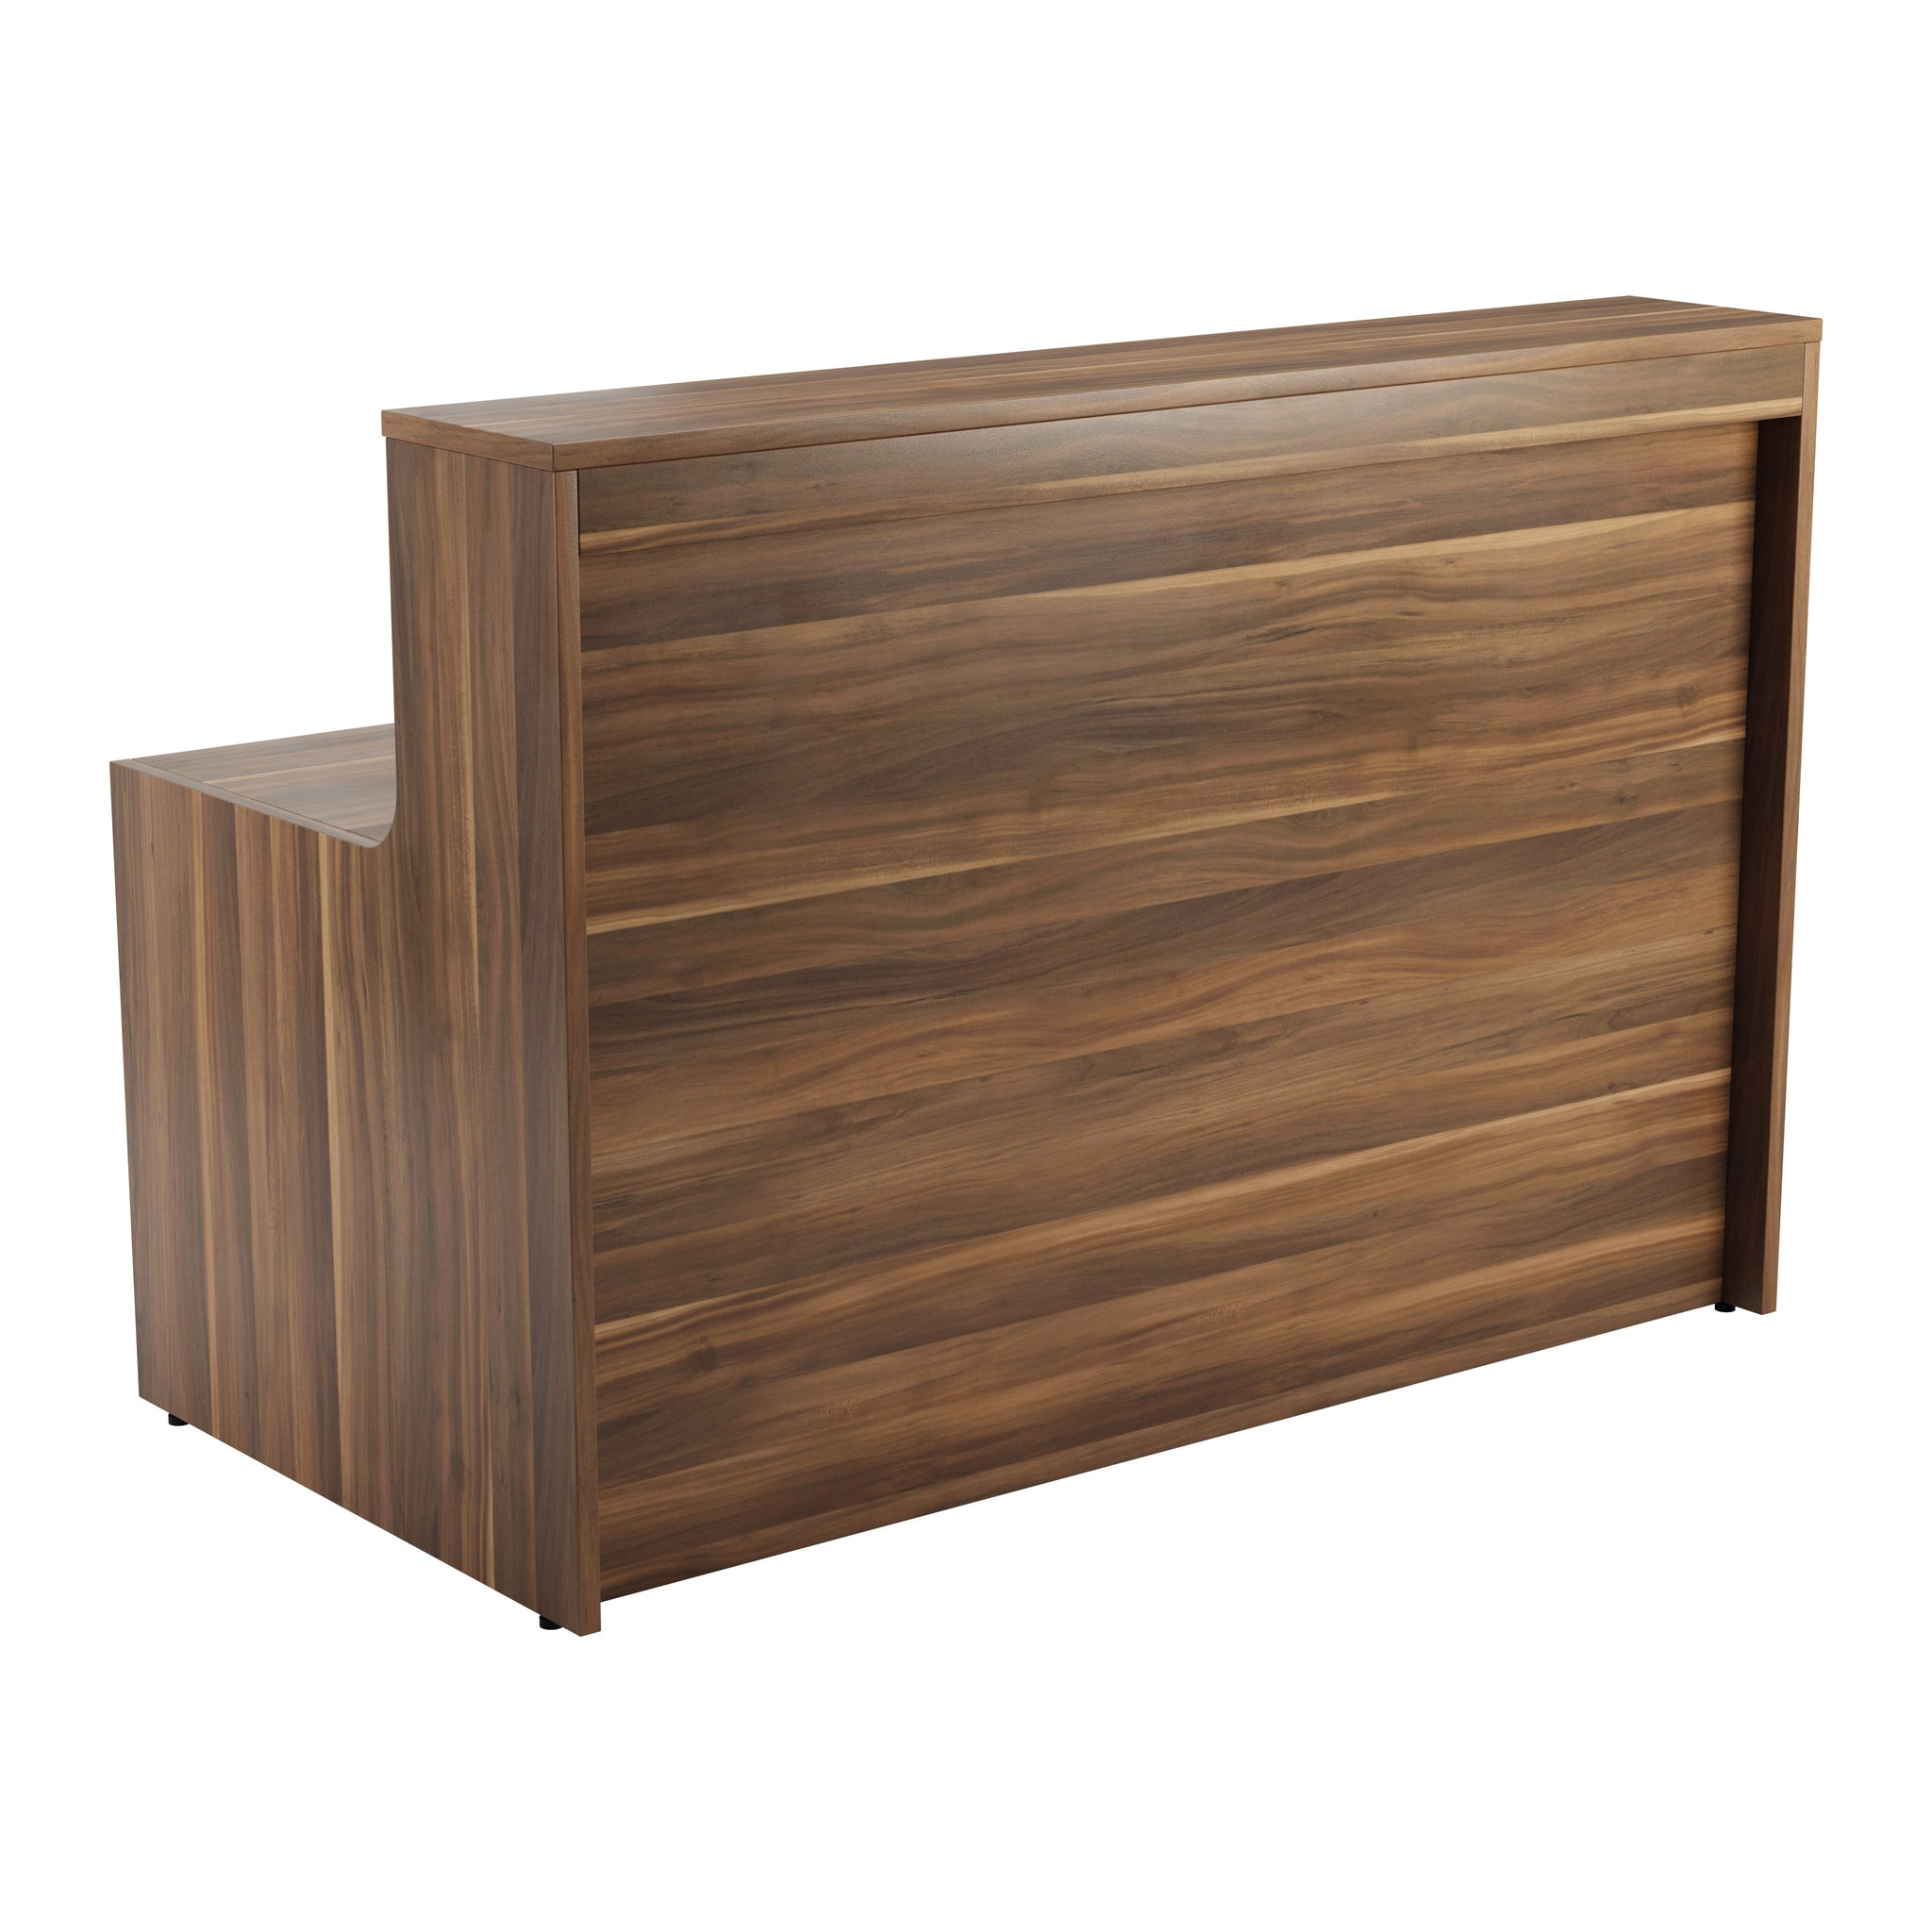 Simple Reception Desk 1600mm x 800mm - Walnut